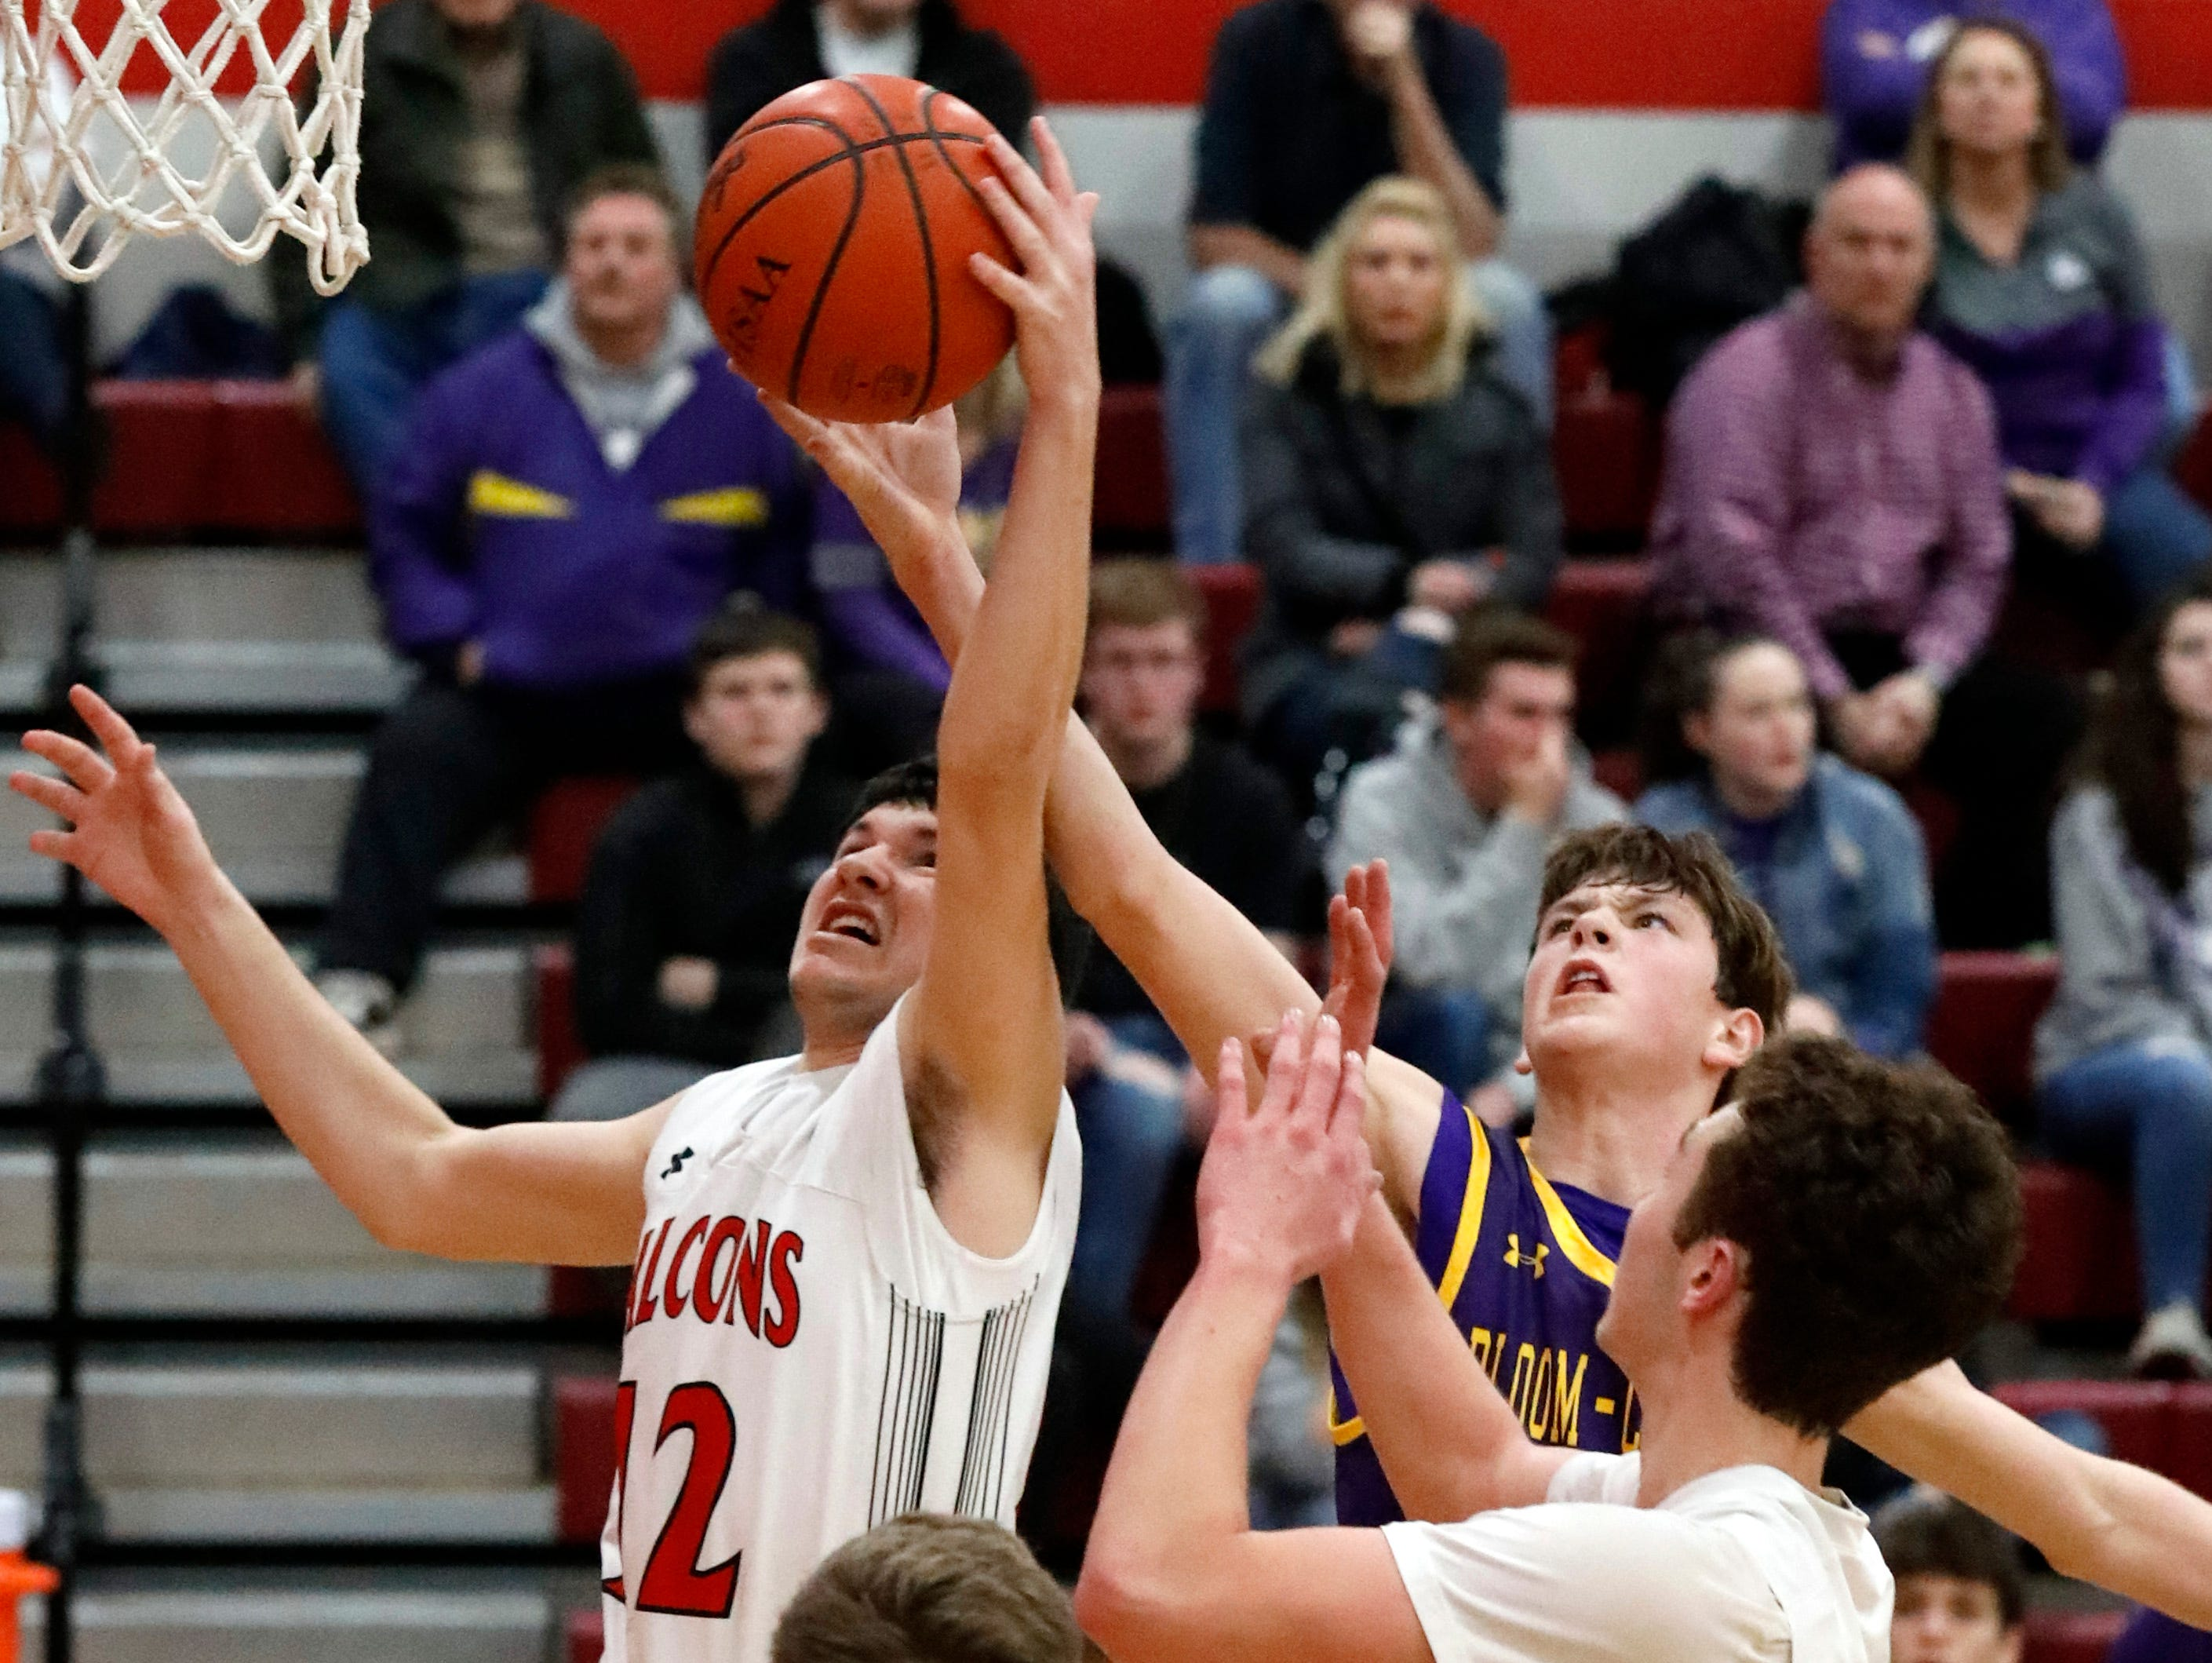 Fairfield Union defeated Bloom-Carroll 42-31 Friday night, Jan. 18, 2019, at Fairfield Union High School in Rushville.